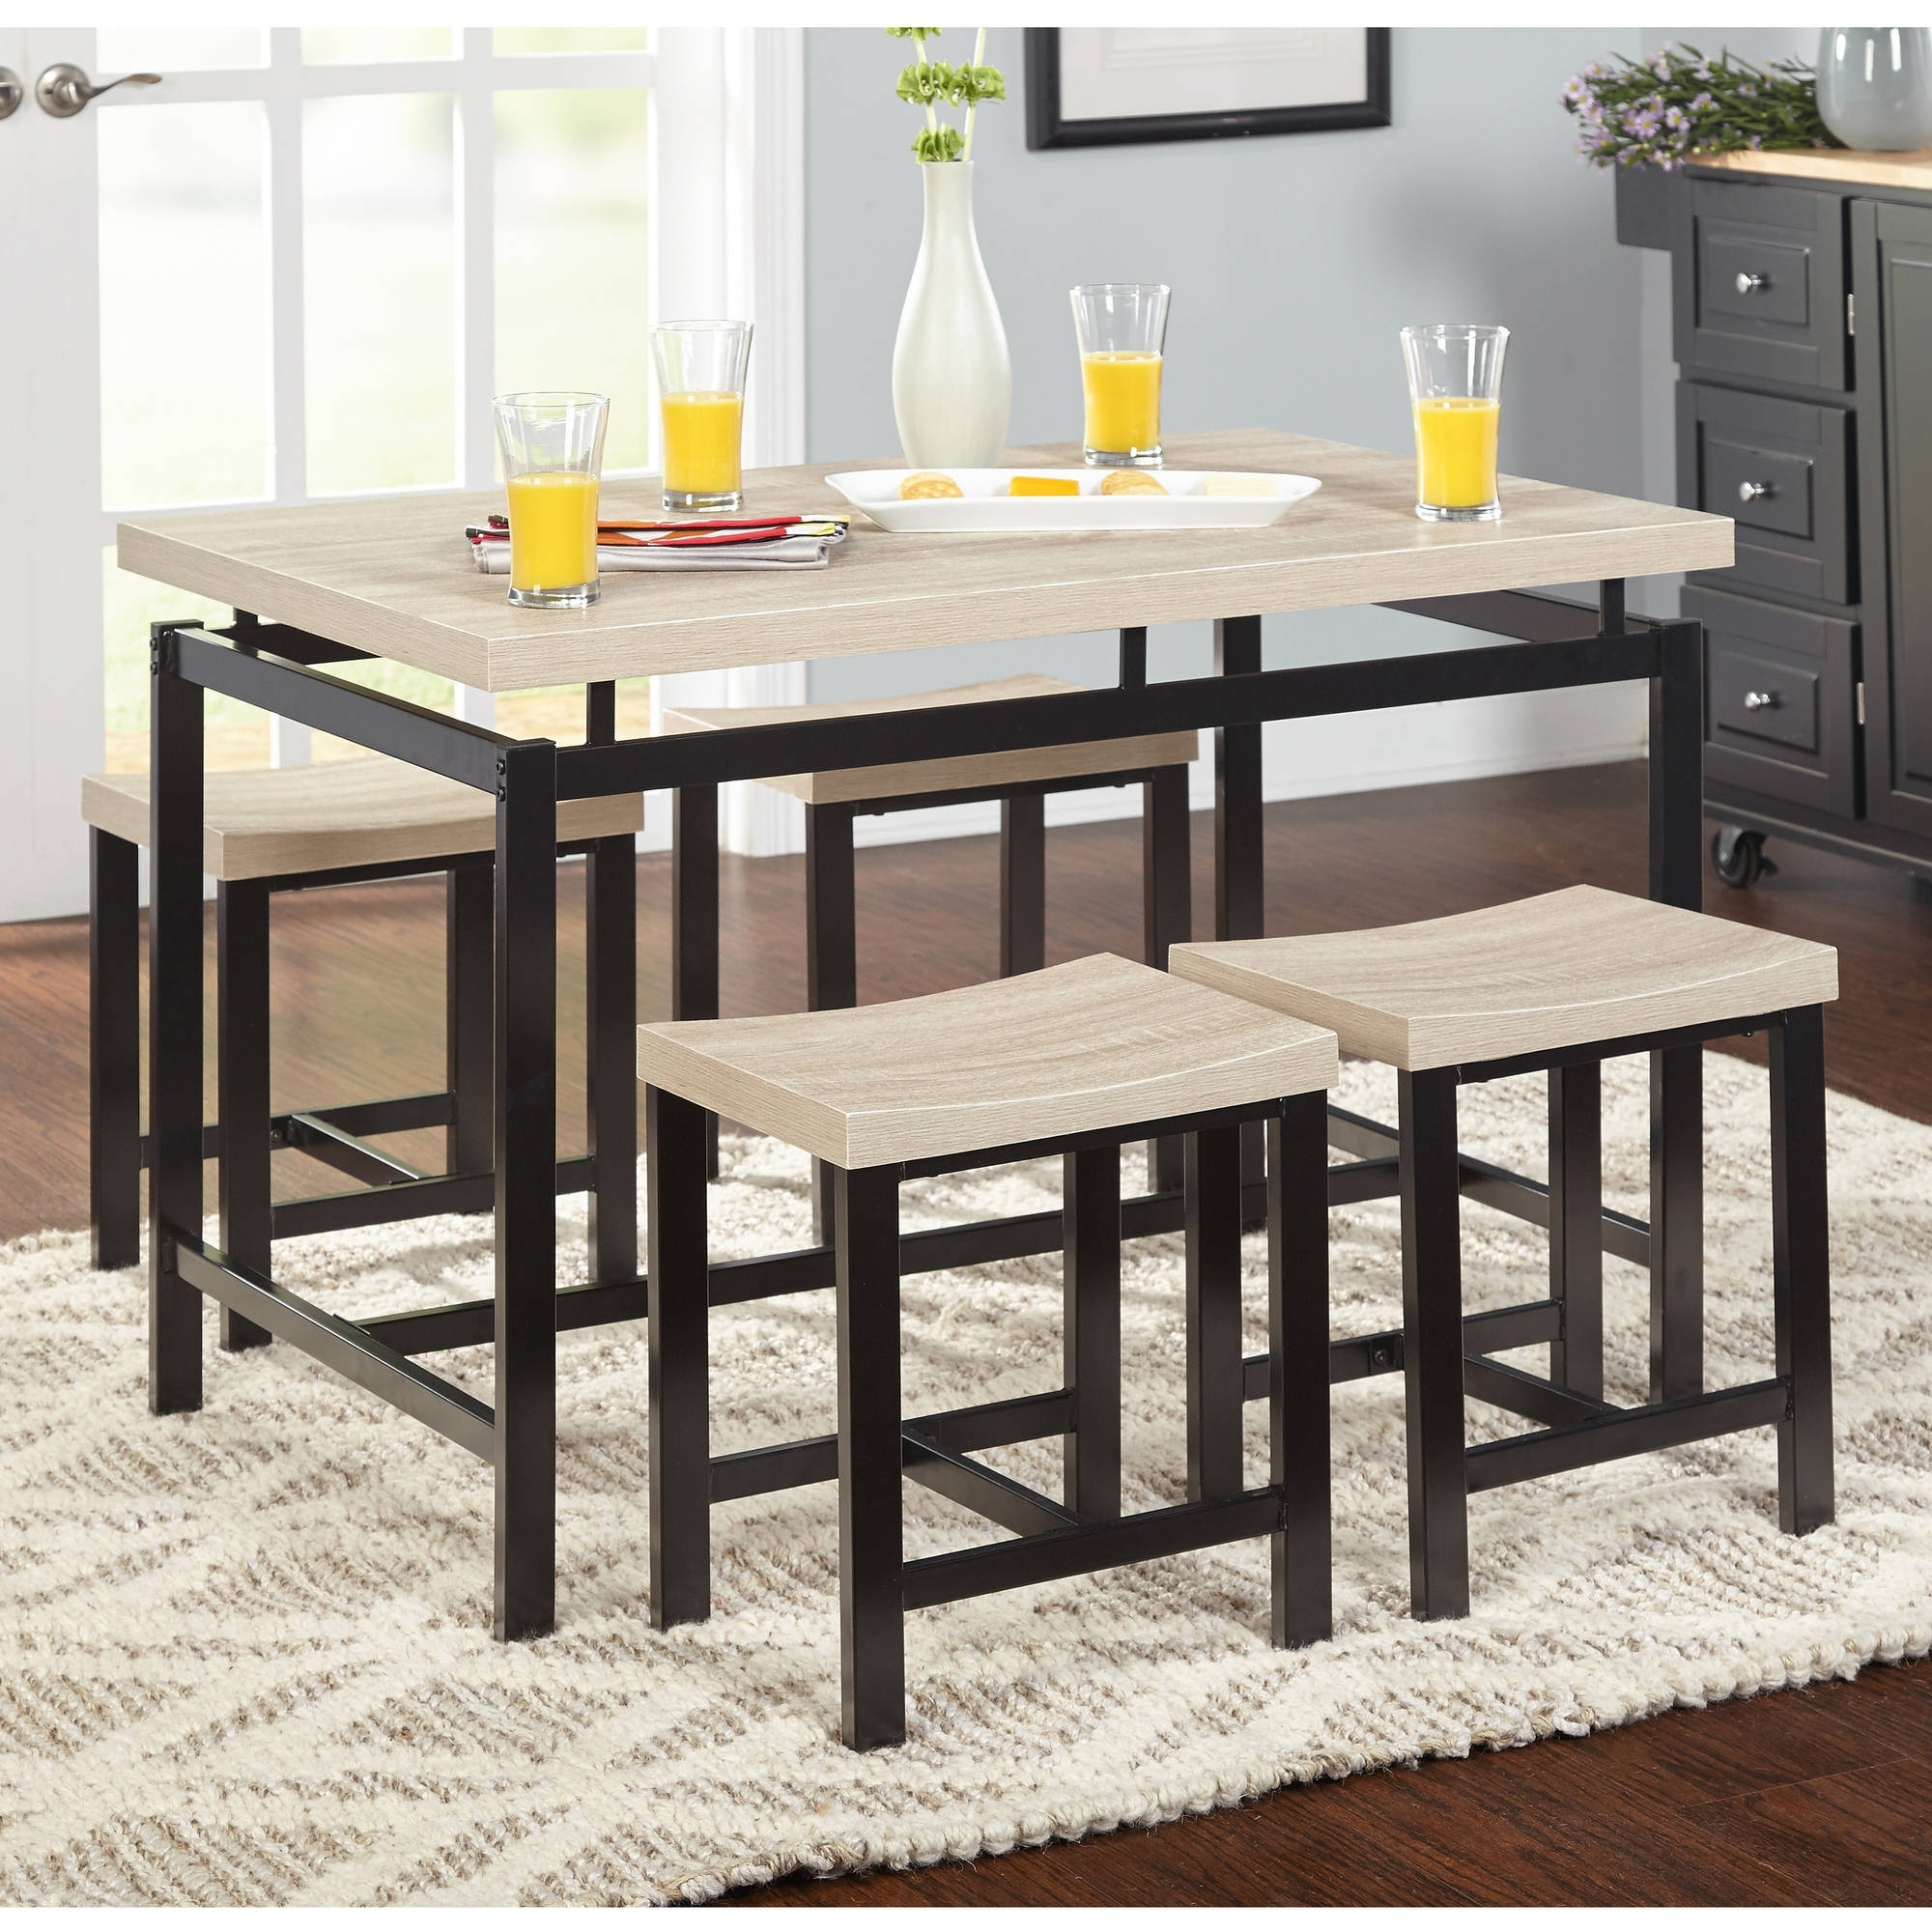 Dining Sets Intended For Recent 5 Piece Delano Dining Set, Natural – Walmart (Gallery 14 of 25)